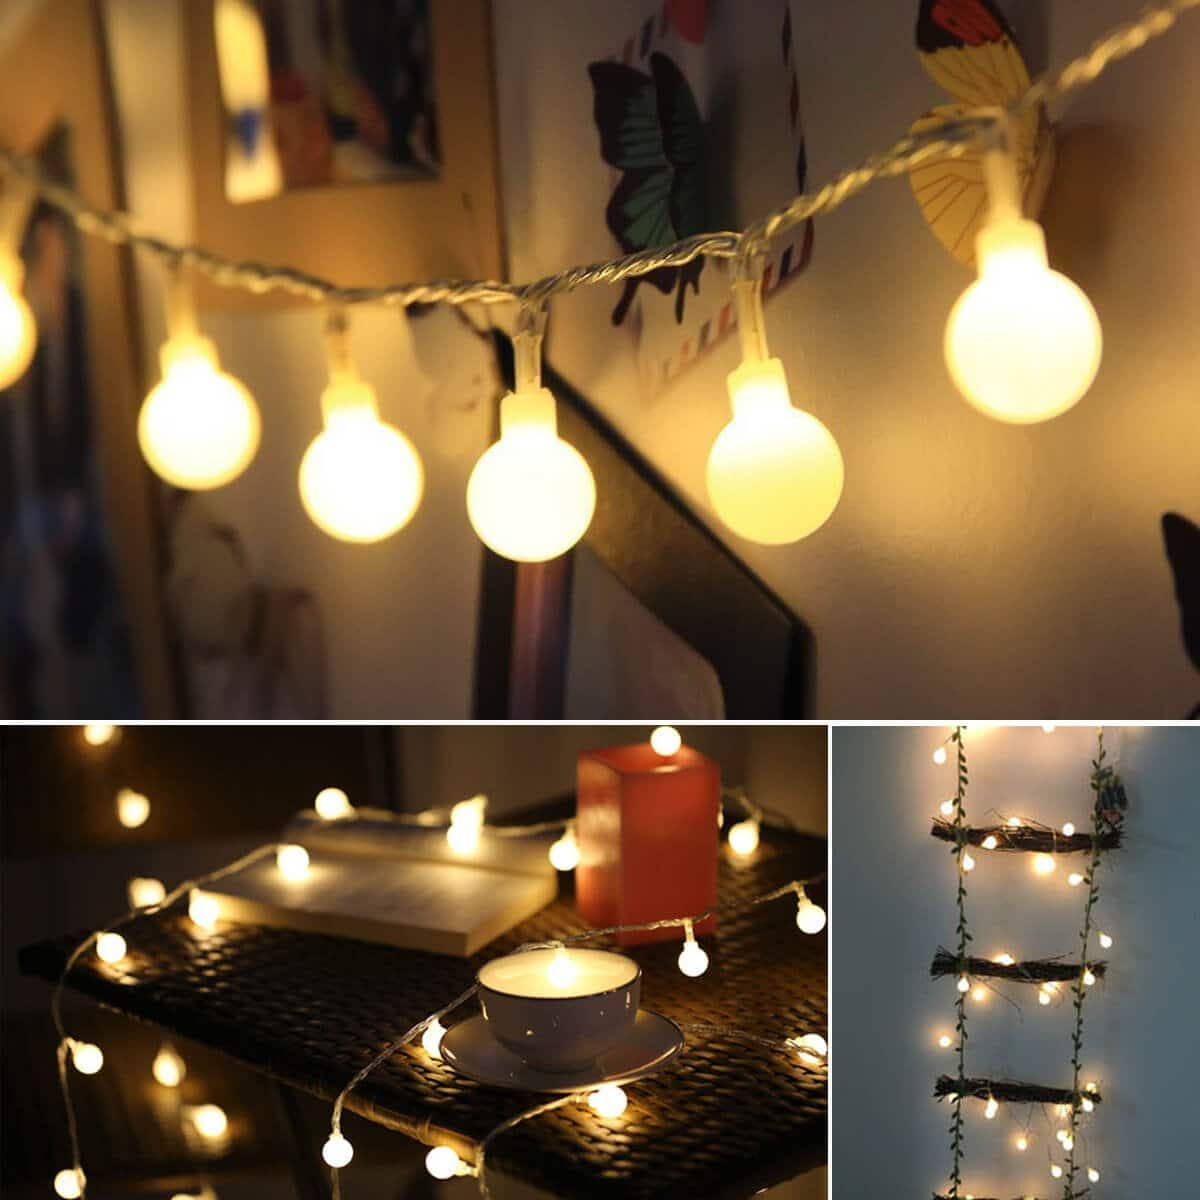 Battery Operated String Lights, 15ft 40 LED Christmas String Lights, 8 Lighting Modes with Timer, Waterproof Globe Fairy String Lights for Christmas Tree on Amazon for $4.49 Prime